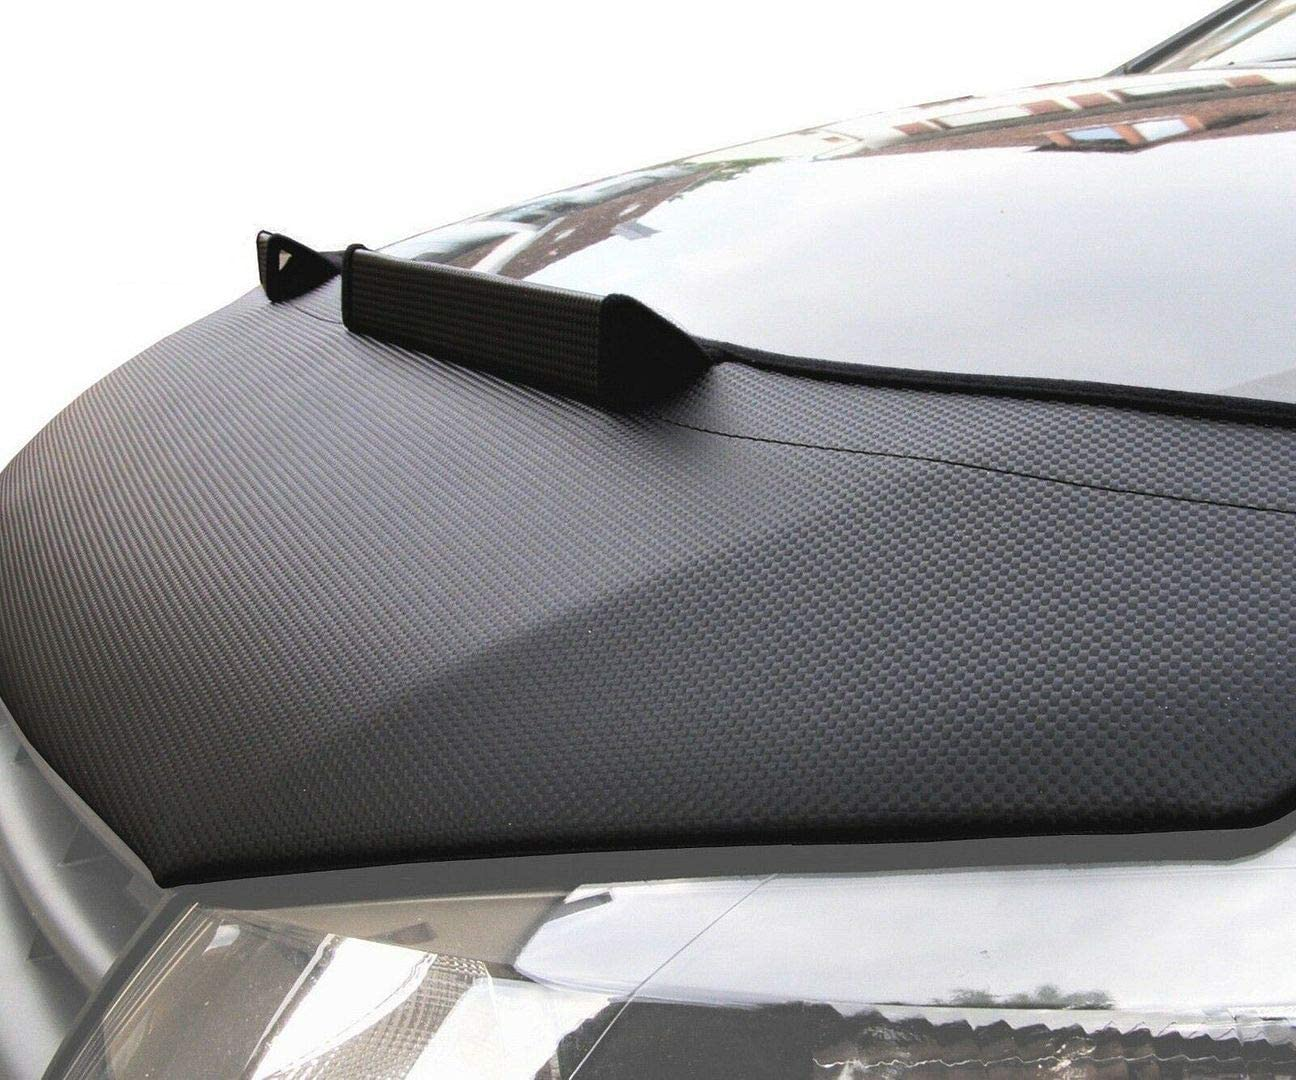 Black Tief Tech Bonnet Hood Bra for Transporter T5 T6 Facelift Engine Hoodcover Stone impact protection Stoneguard